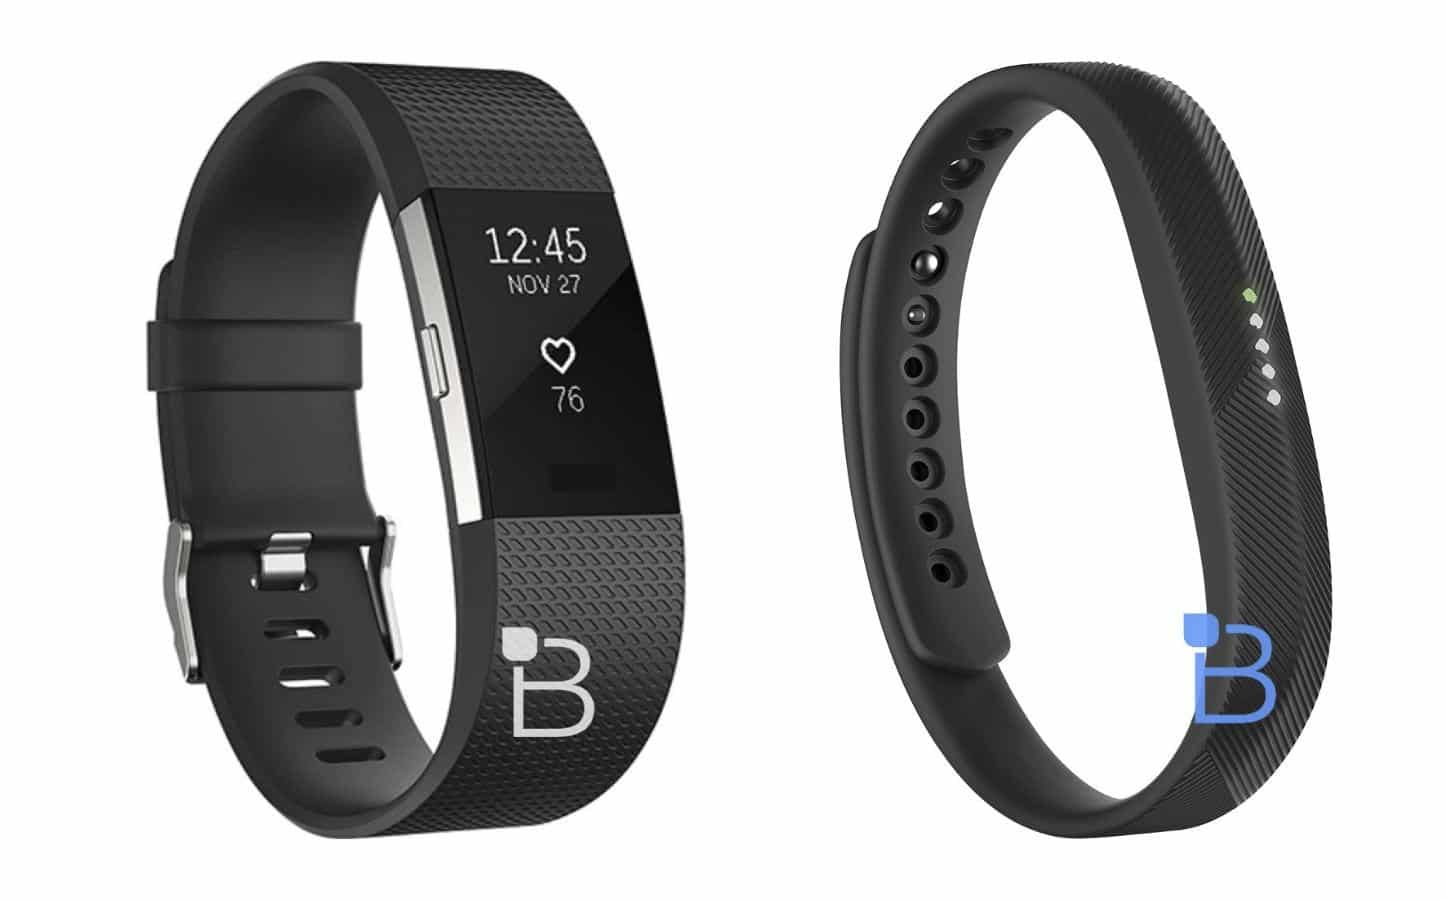 This Is What The Fitbit Charge 2 And Flex 2 Devices Will